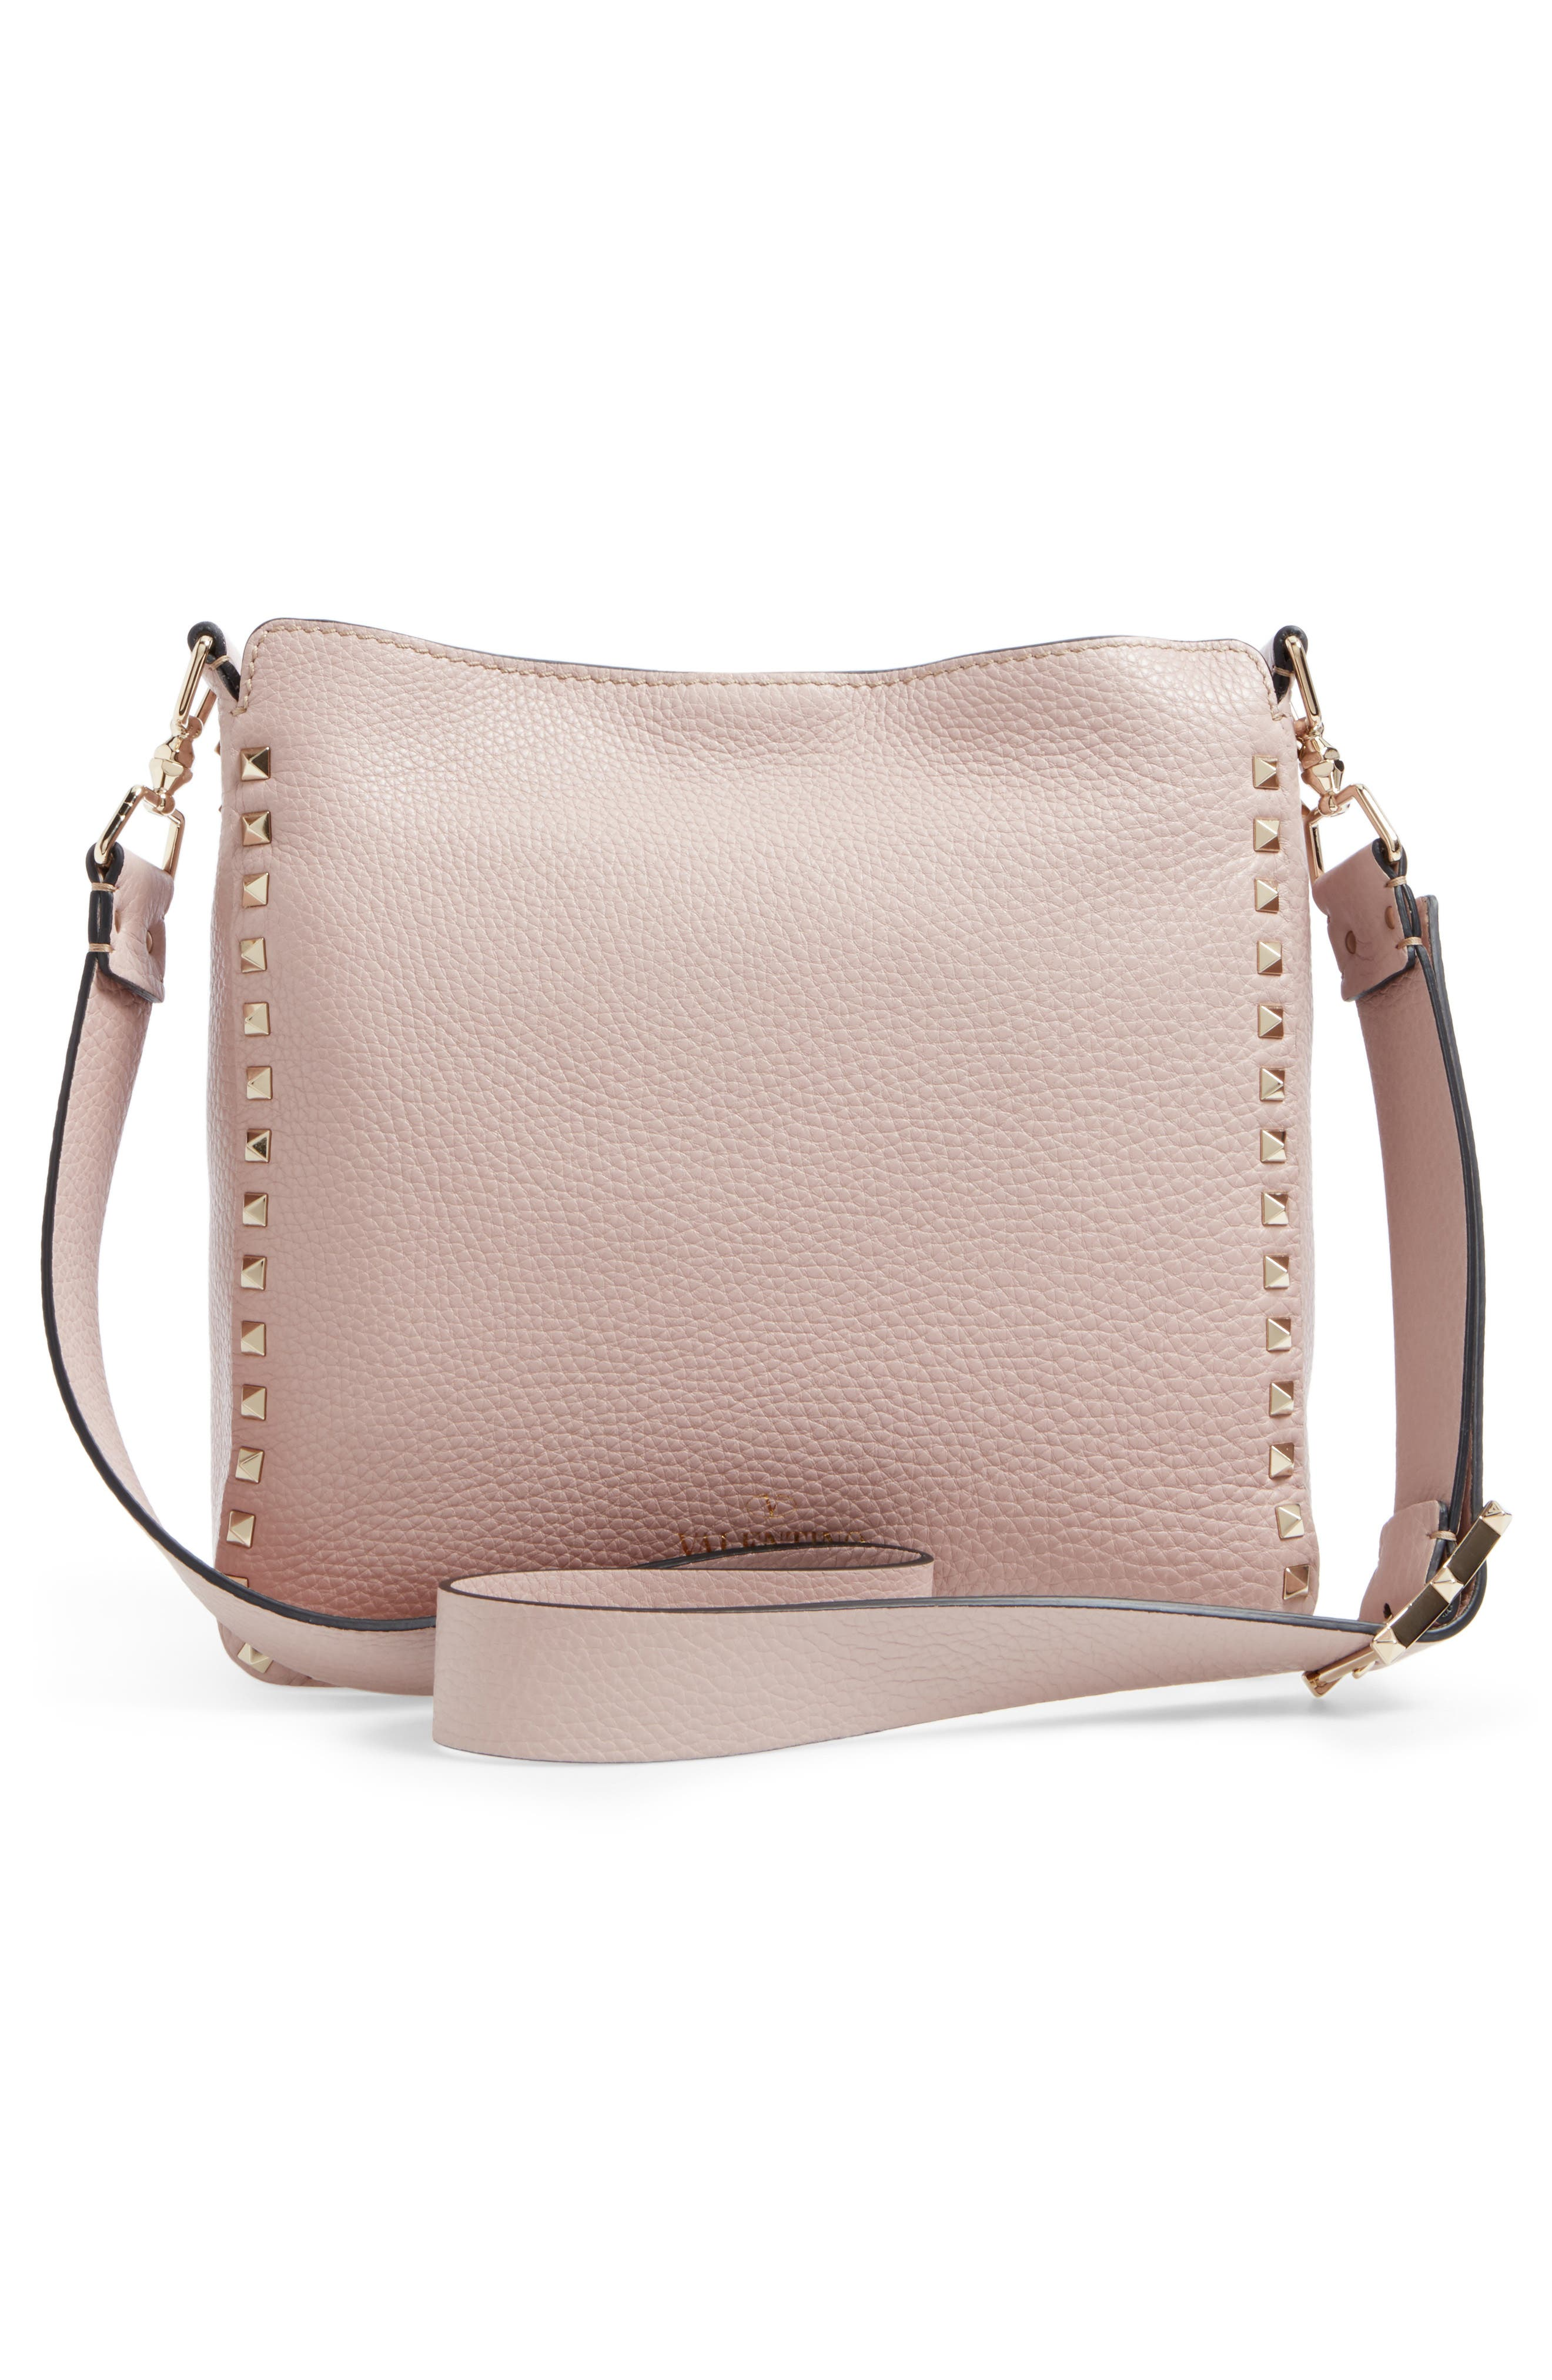 Vitello Rockstud Leather Hobo,                             Alternate thumbnail 3, color,                             950